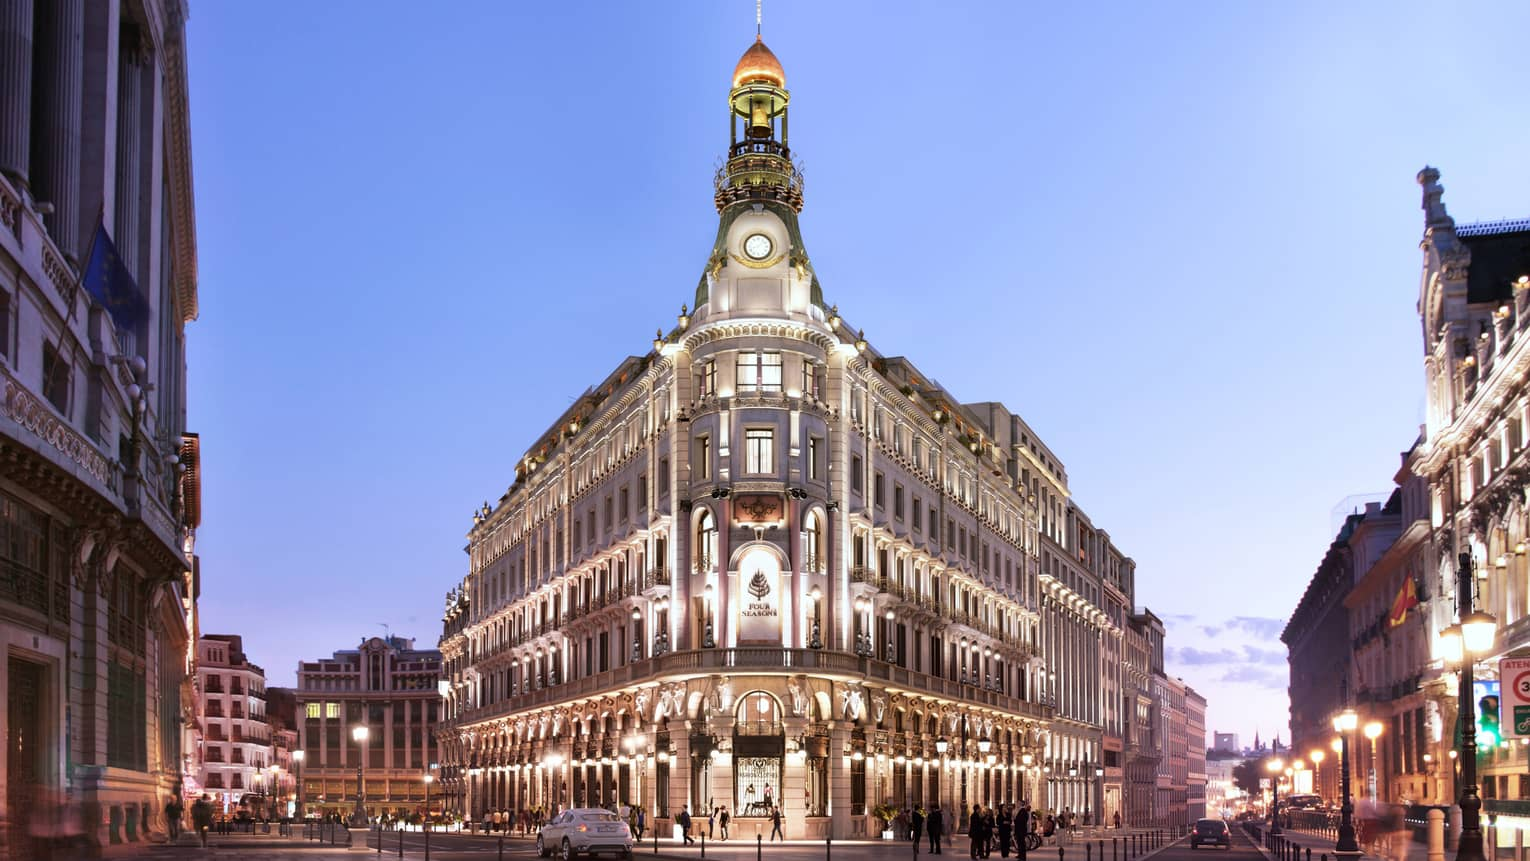 The exterior of the historic Four Seasons Hotel Madrid building